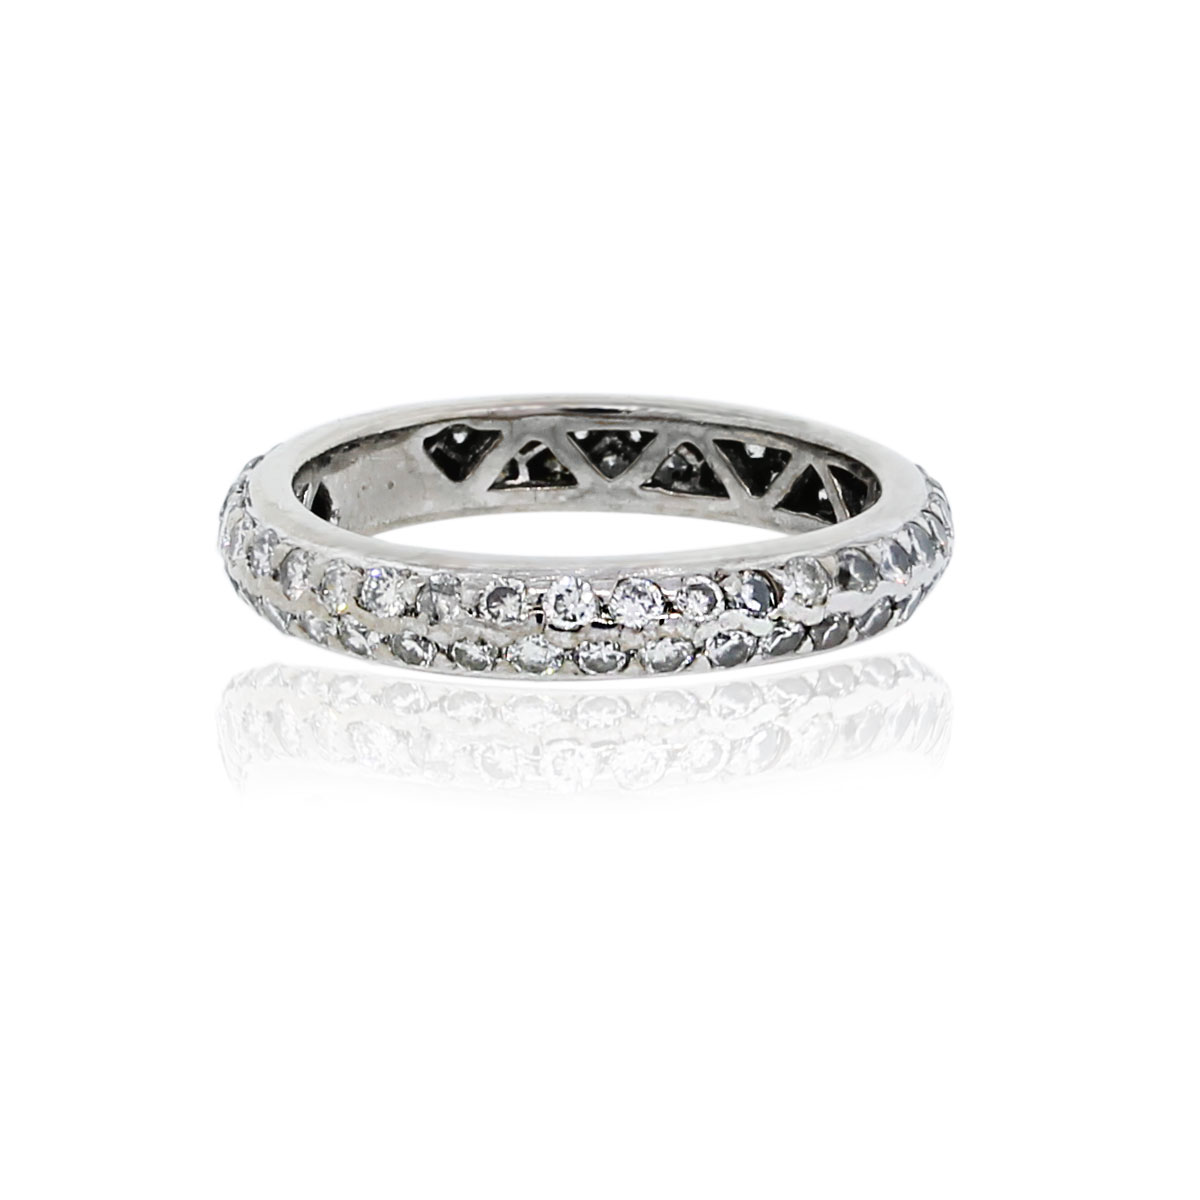 You are viewing this 18K White Gold Pave Round Brilliant Diamond Band Ring!